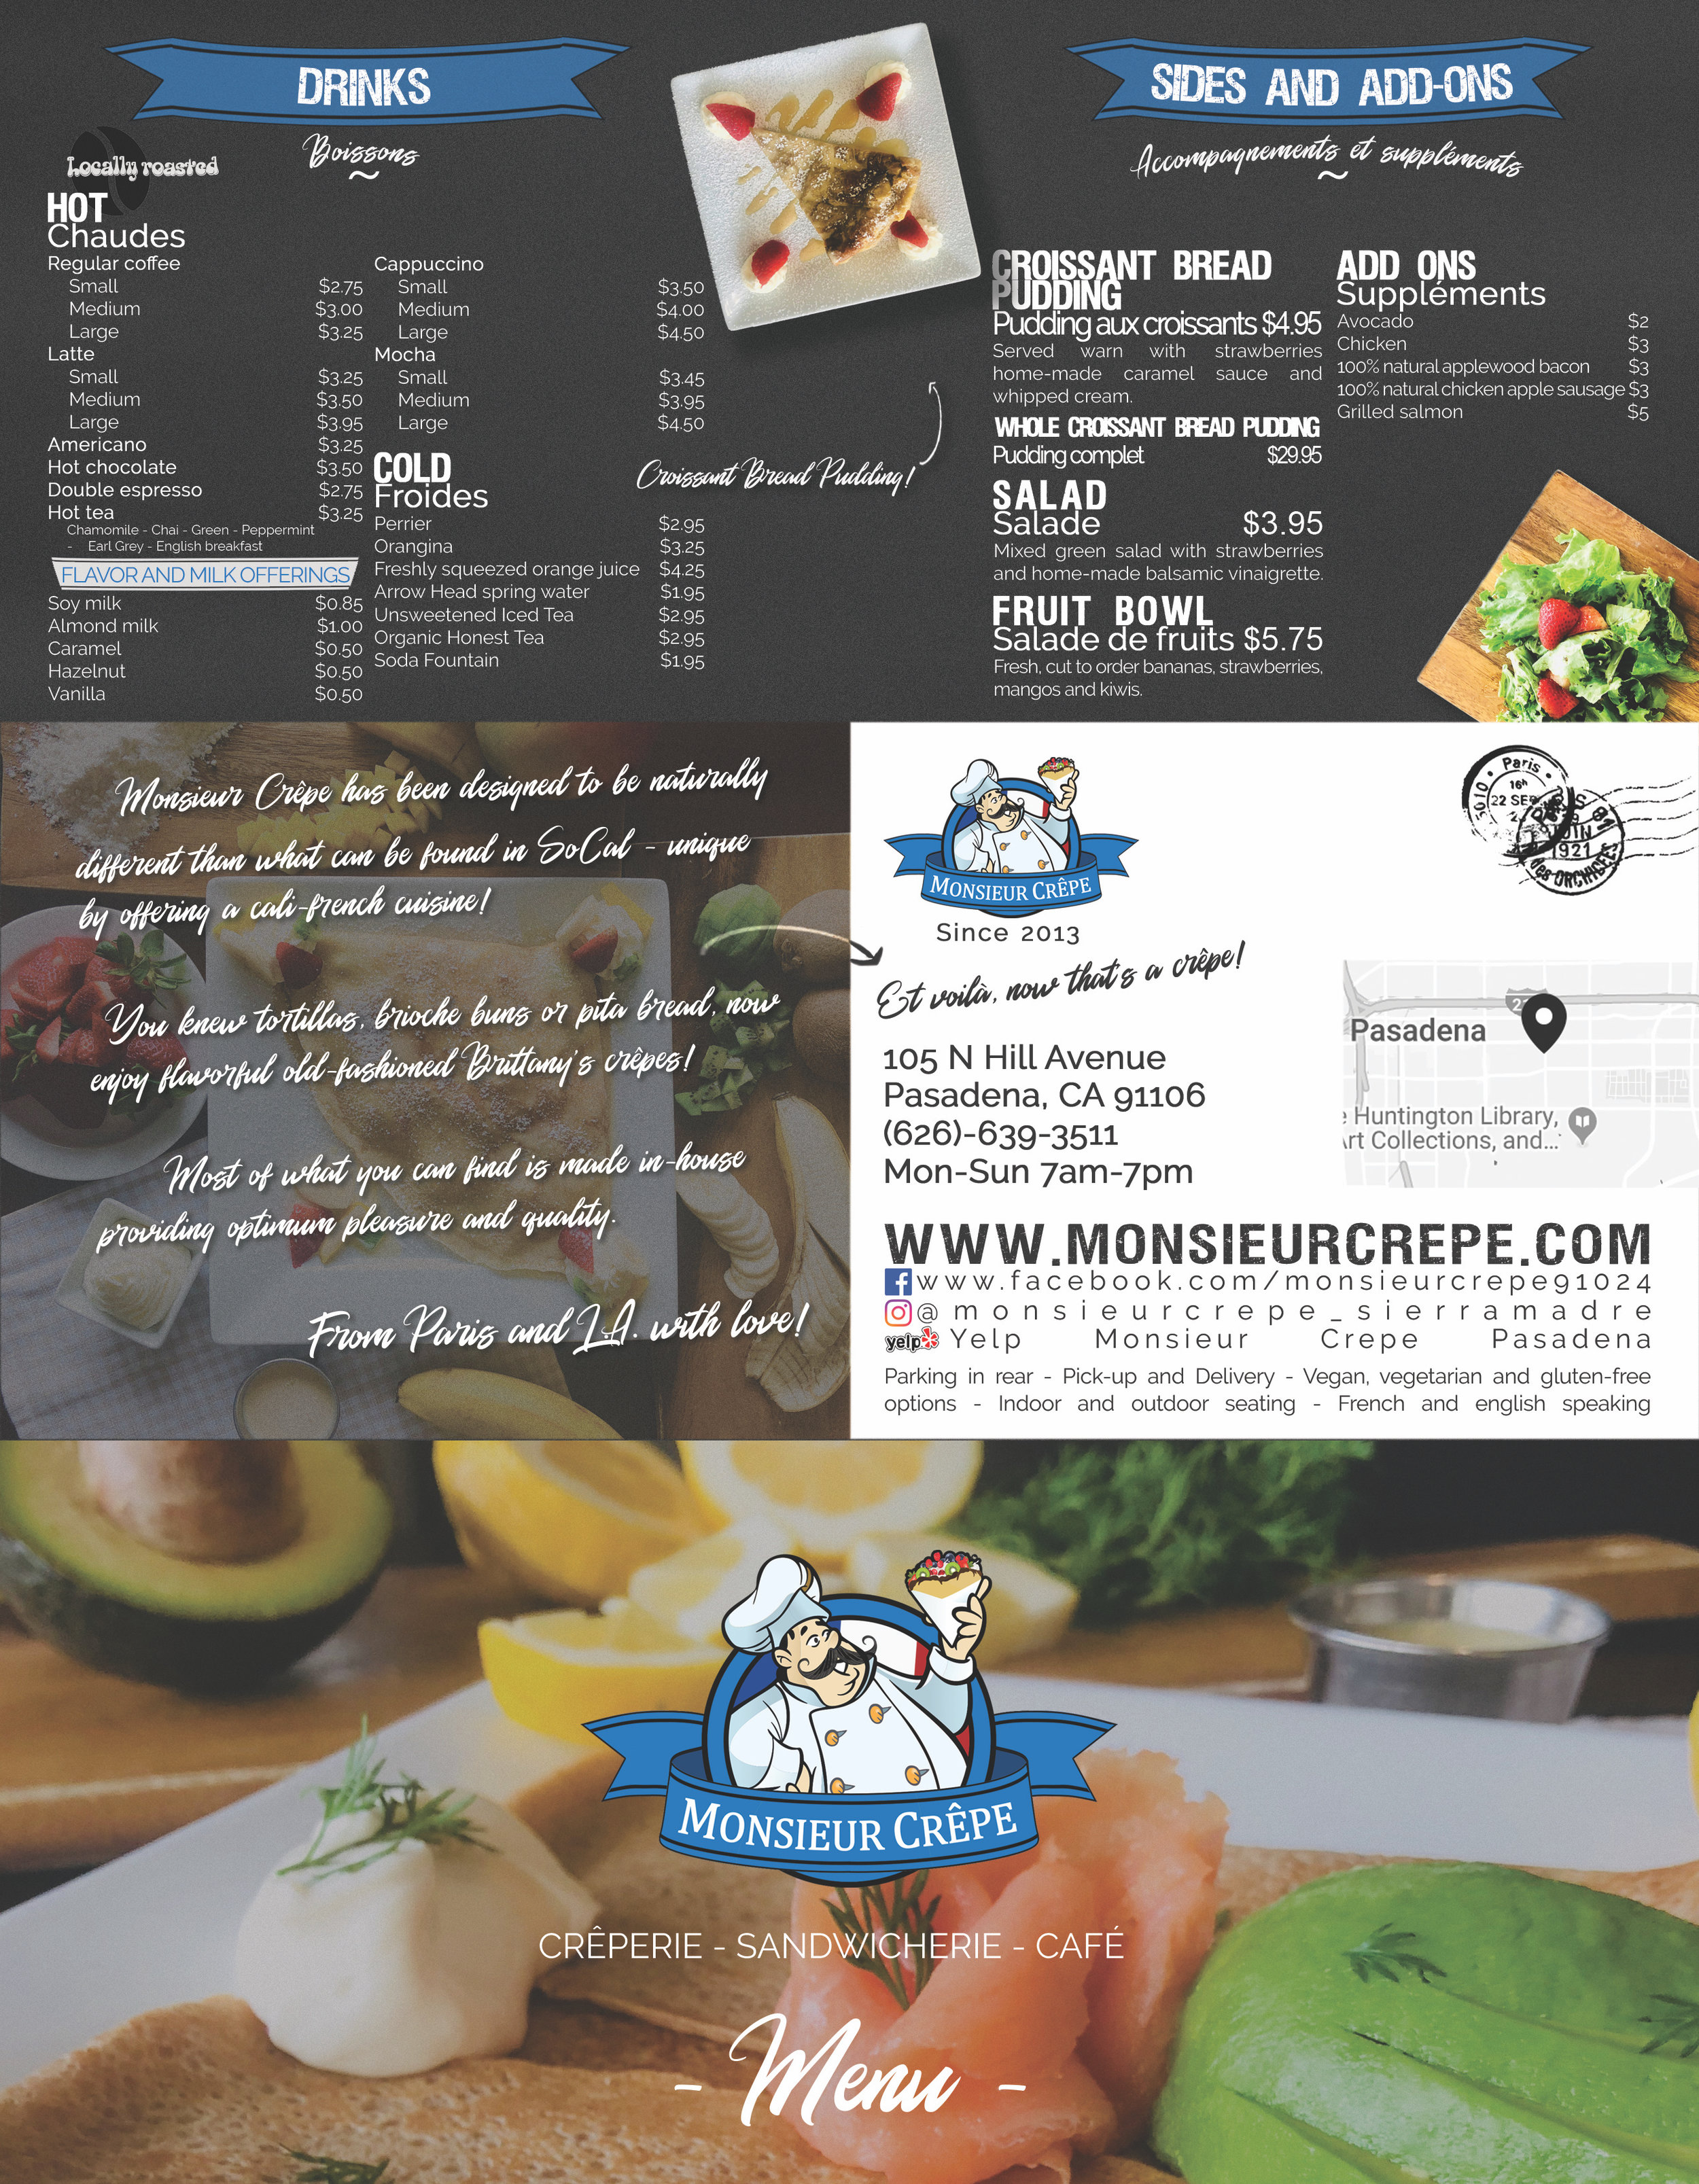 MENU_Monsieur_Crepe_Quality_Food_French_Crperie_LosAngeles_Pasadena_-FRONT-TAKEOUT-MENU.jpg